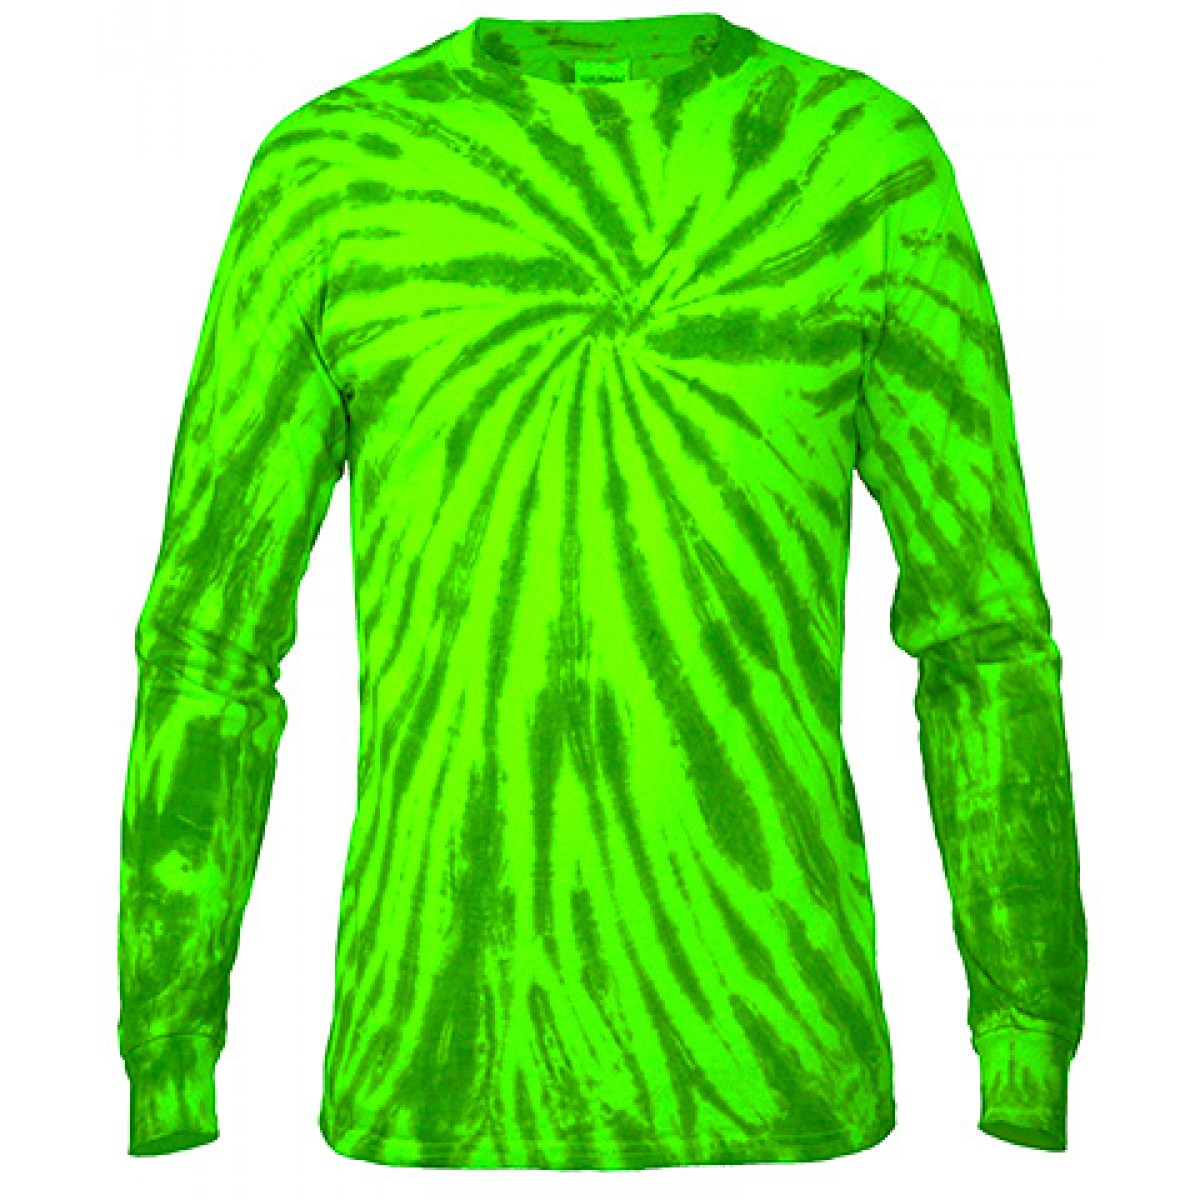 Multi Color Tie-Dye Long Sleeve Shirt -Green-M